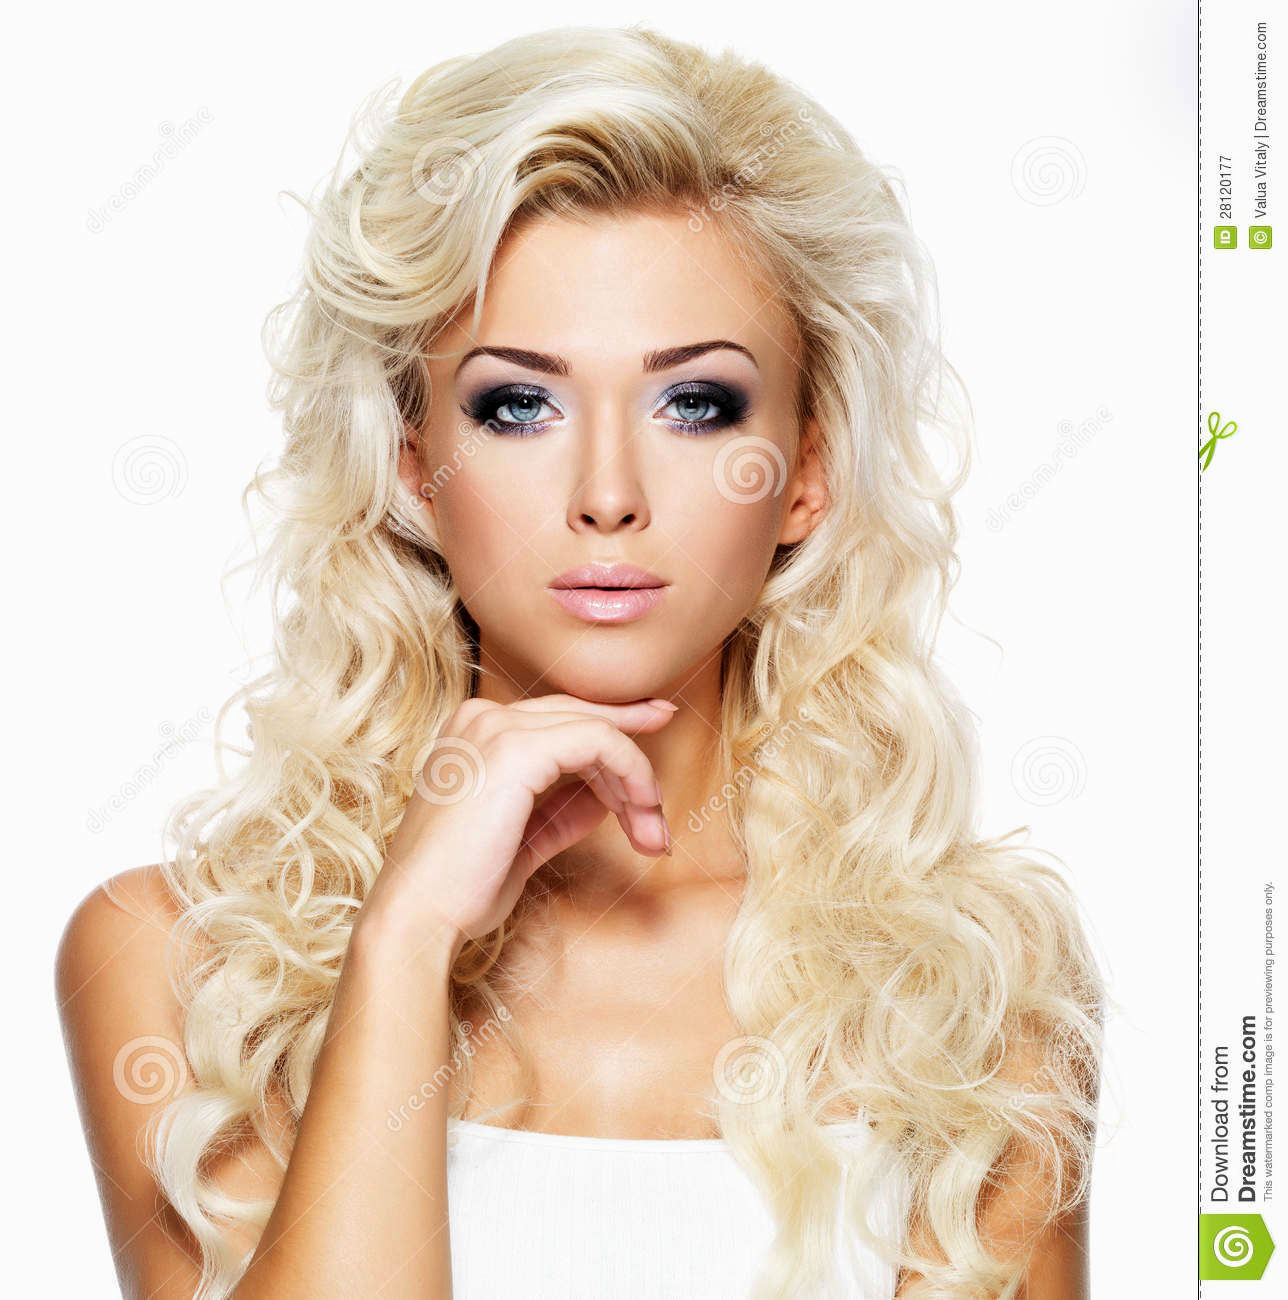 contemporary hairstyles with long hair Photo Stylish hairstyles with long hair models